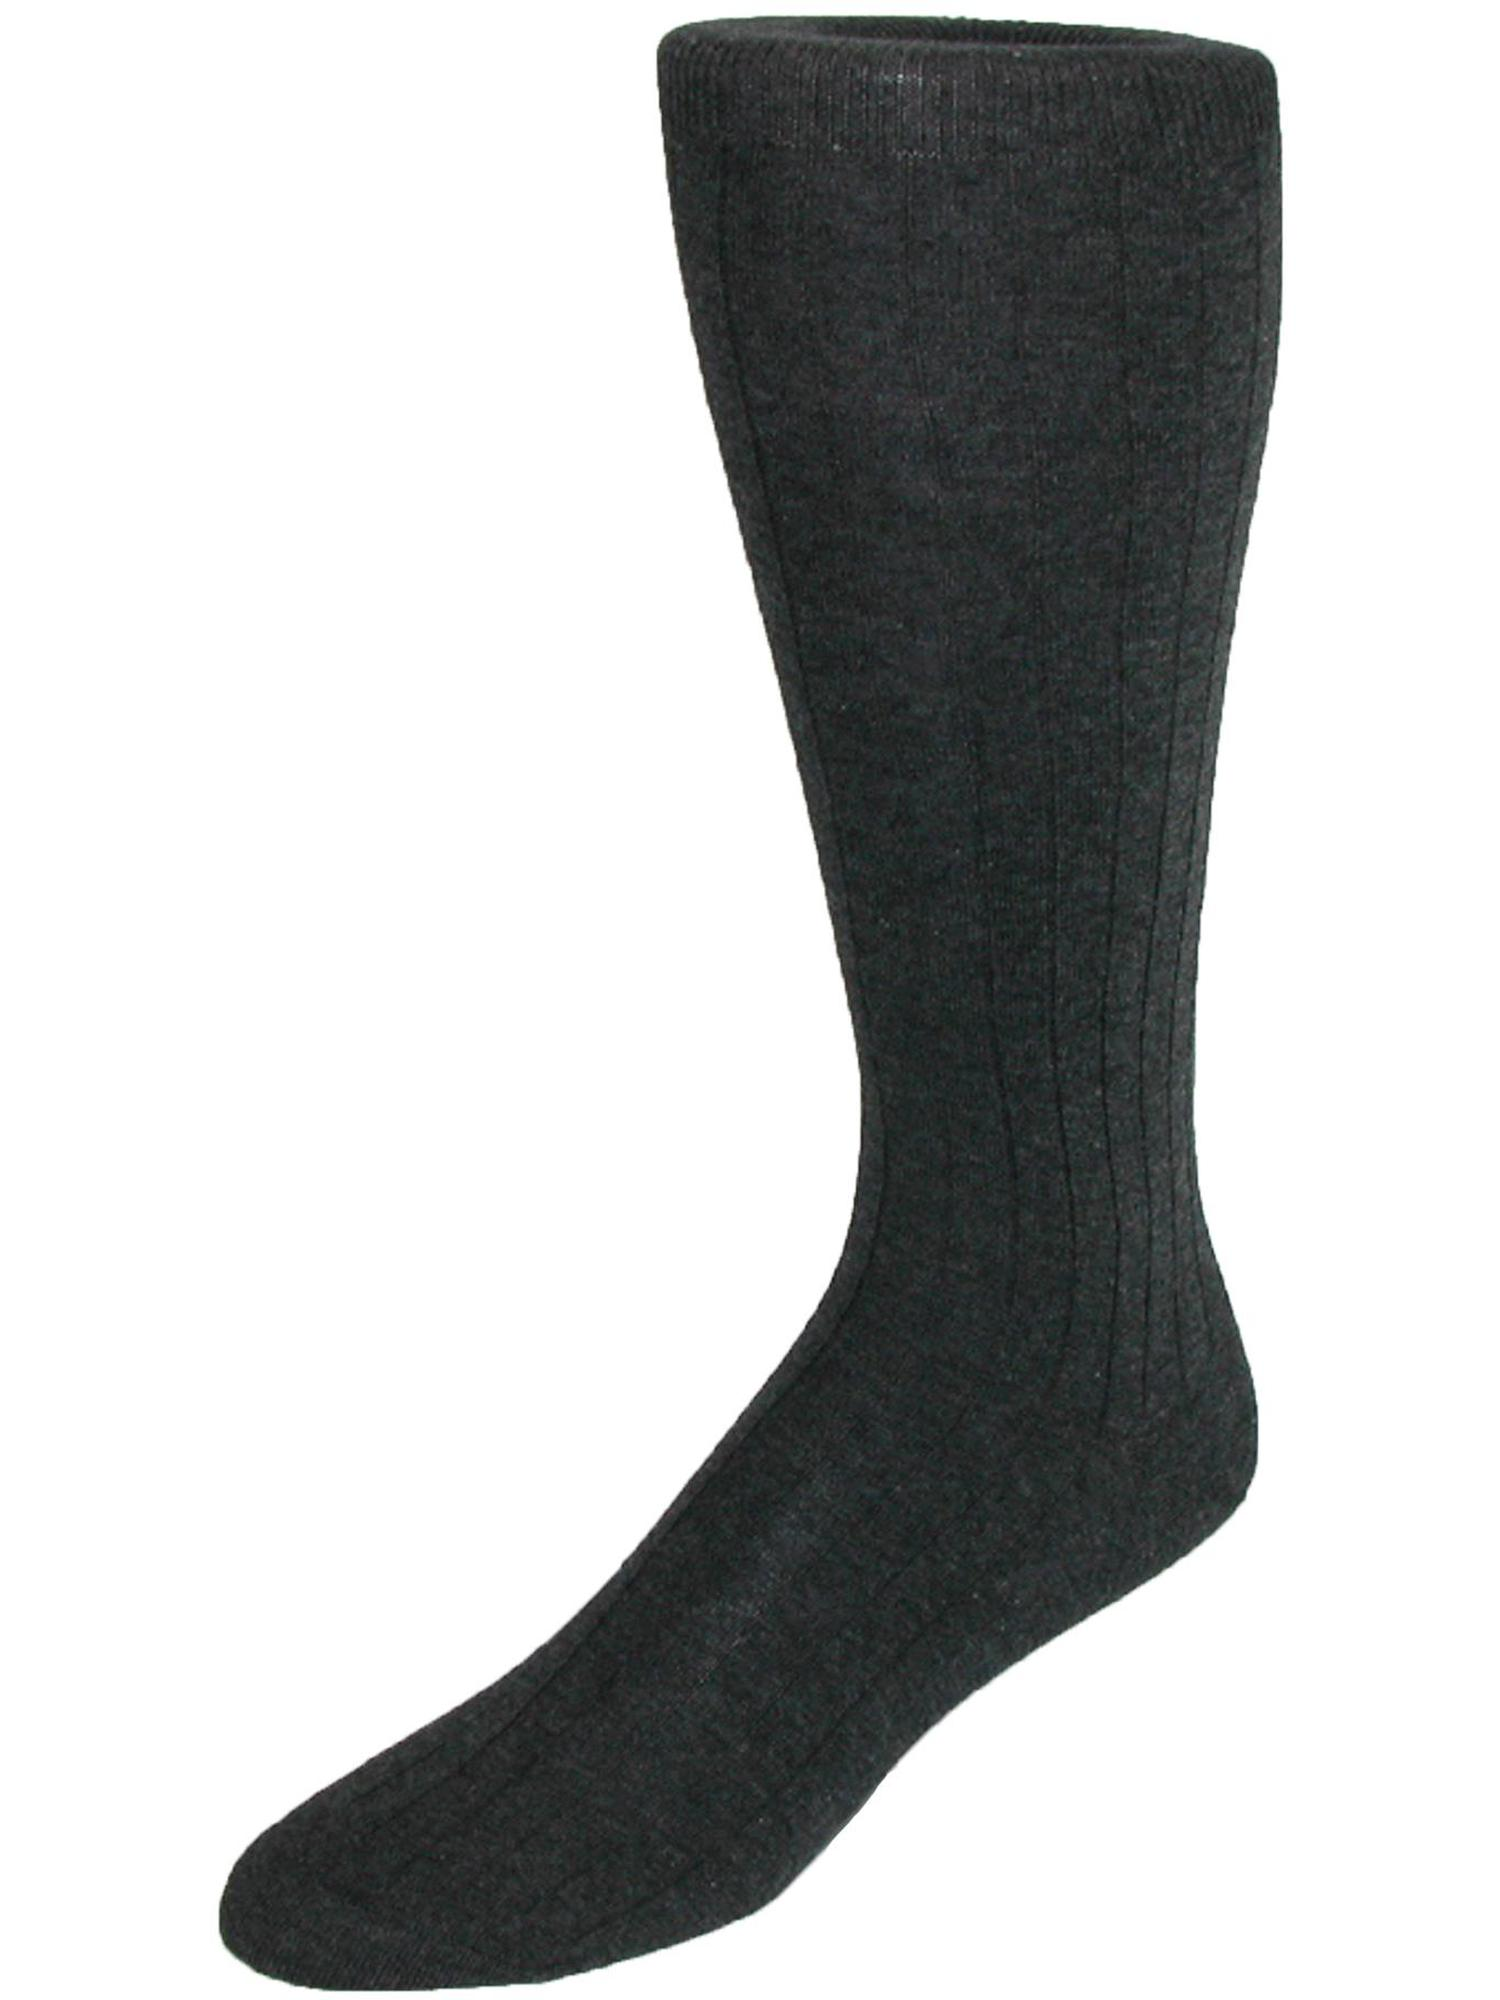 Size one size Men's Cotton Over the Calf Dress Trouser Socks